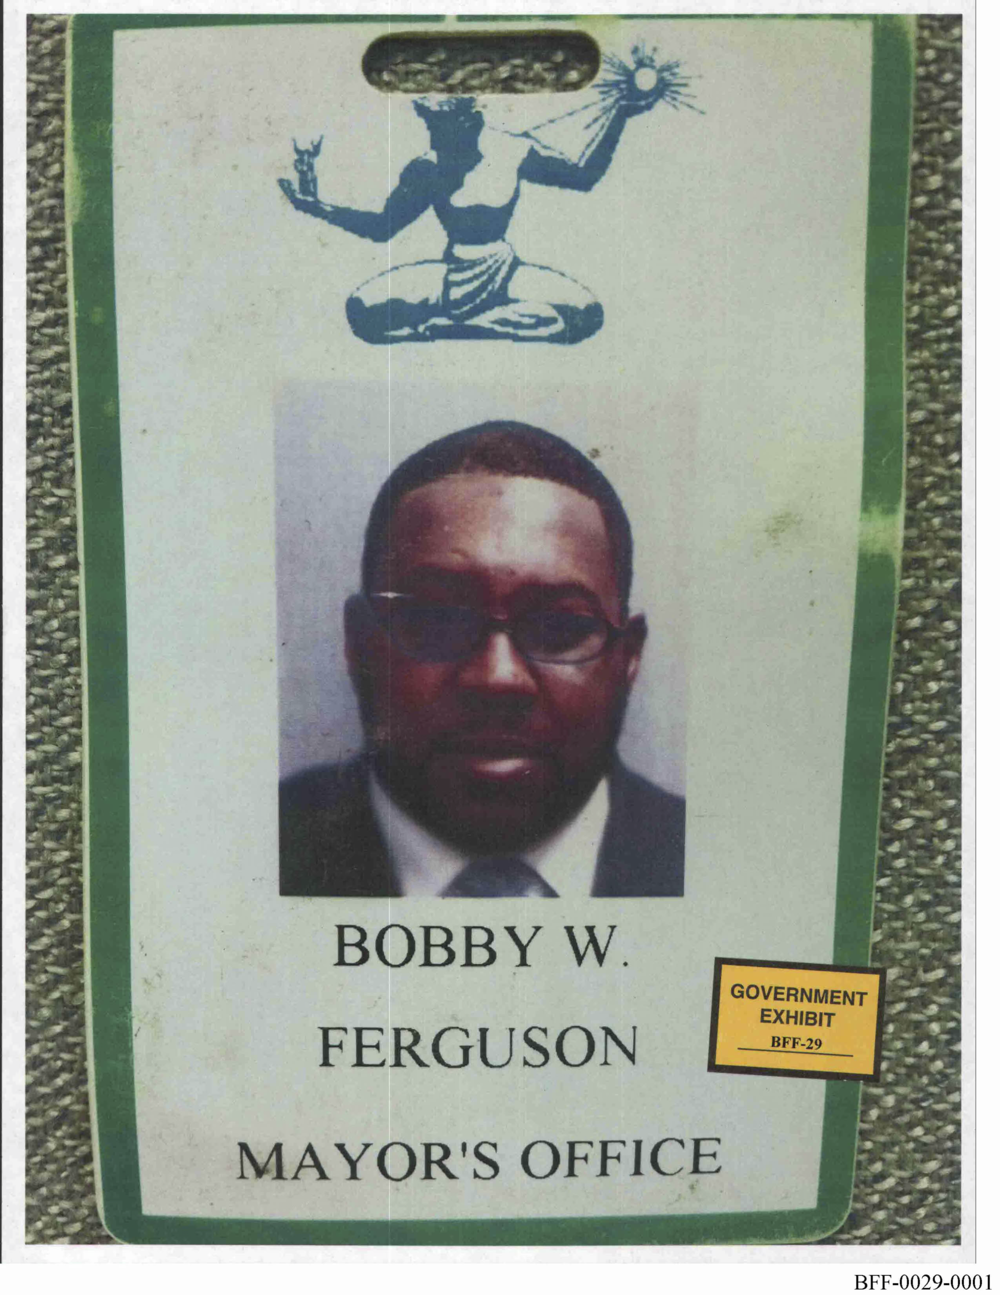 Even though he was not a city employee, Bobby Ferguson had his own Mayor's Office identification badge, which granted him access to the Mayor's Office.  Courtesy of Mark Chutkow.